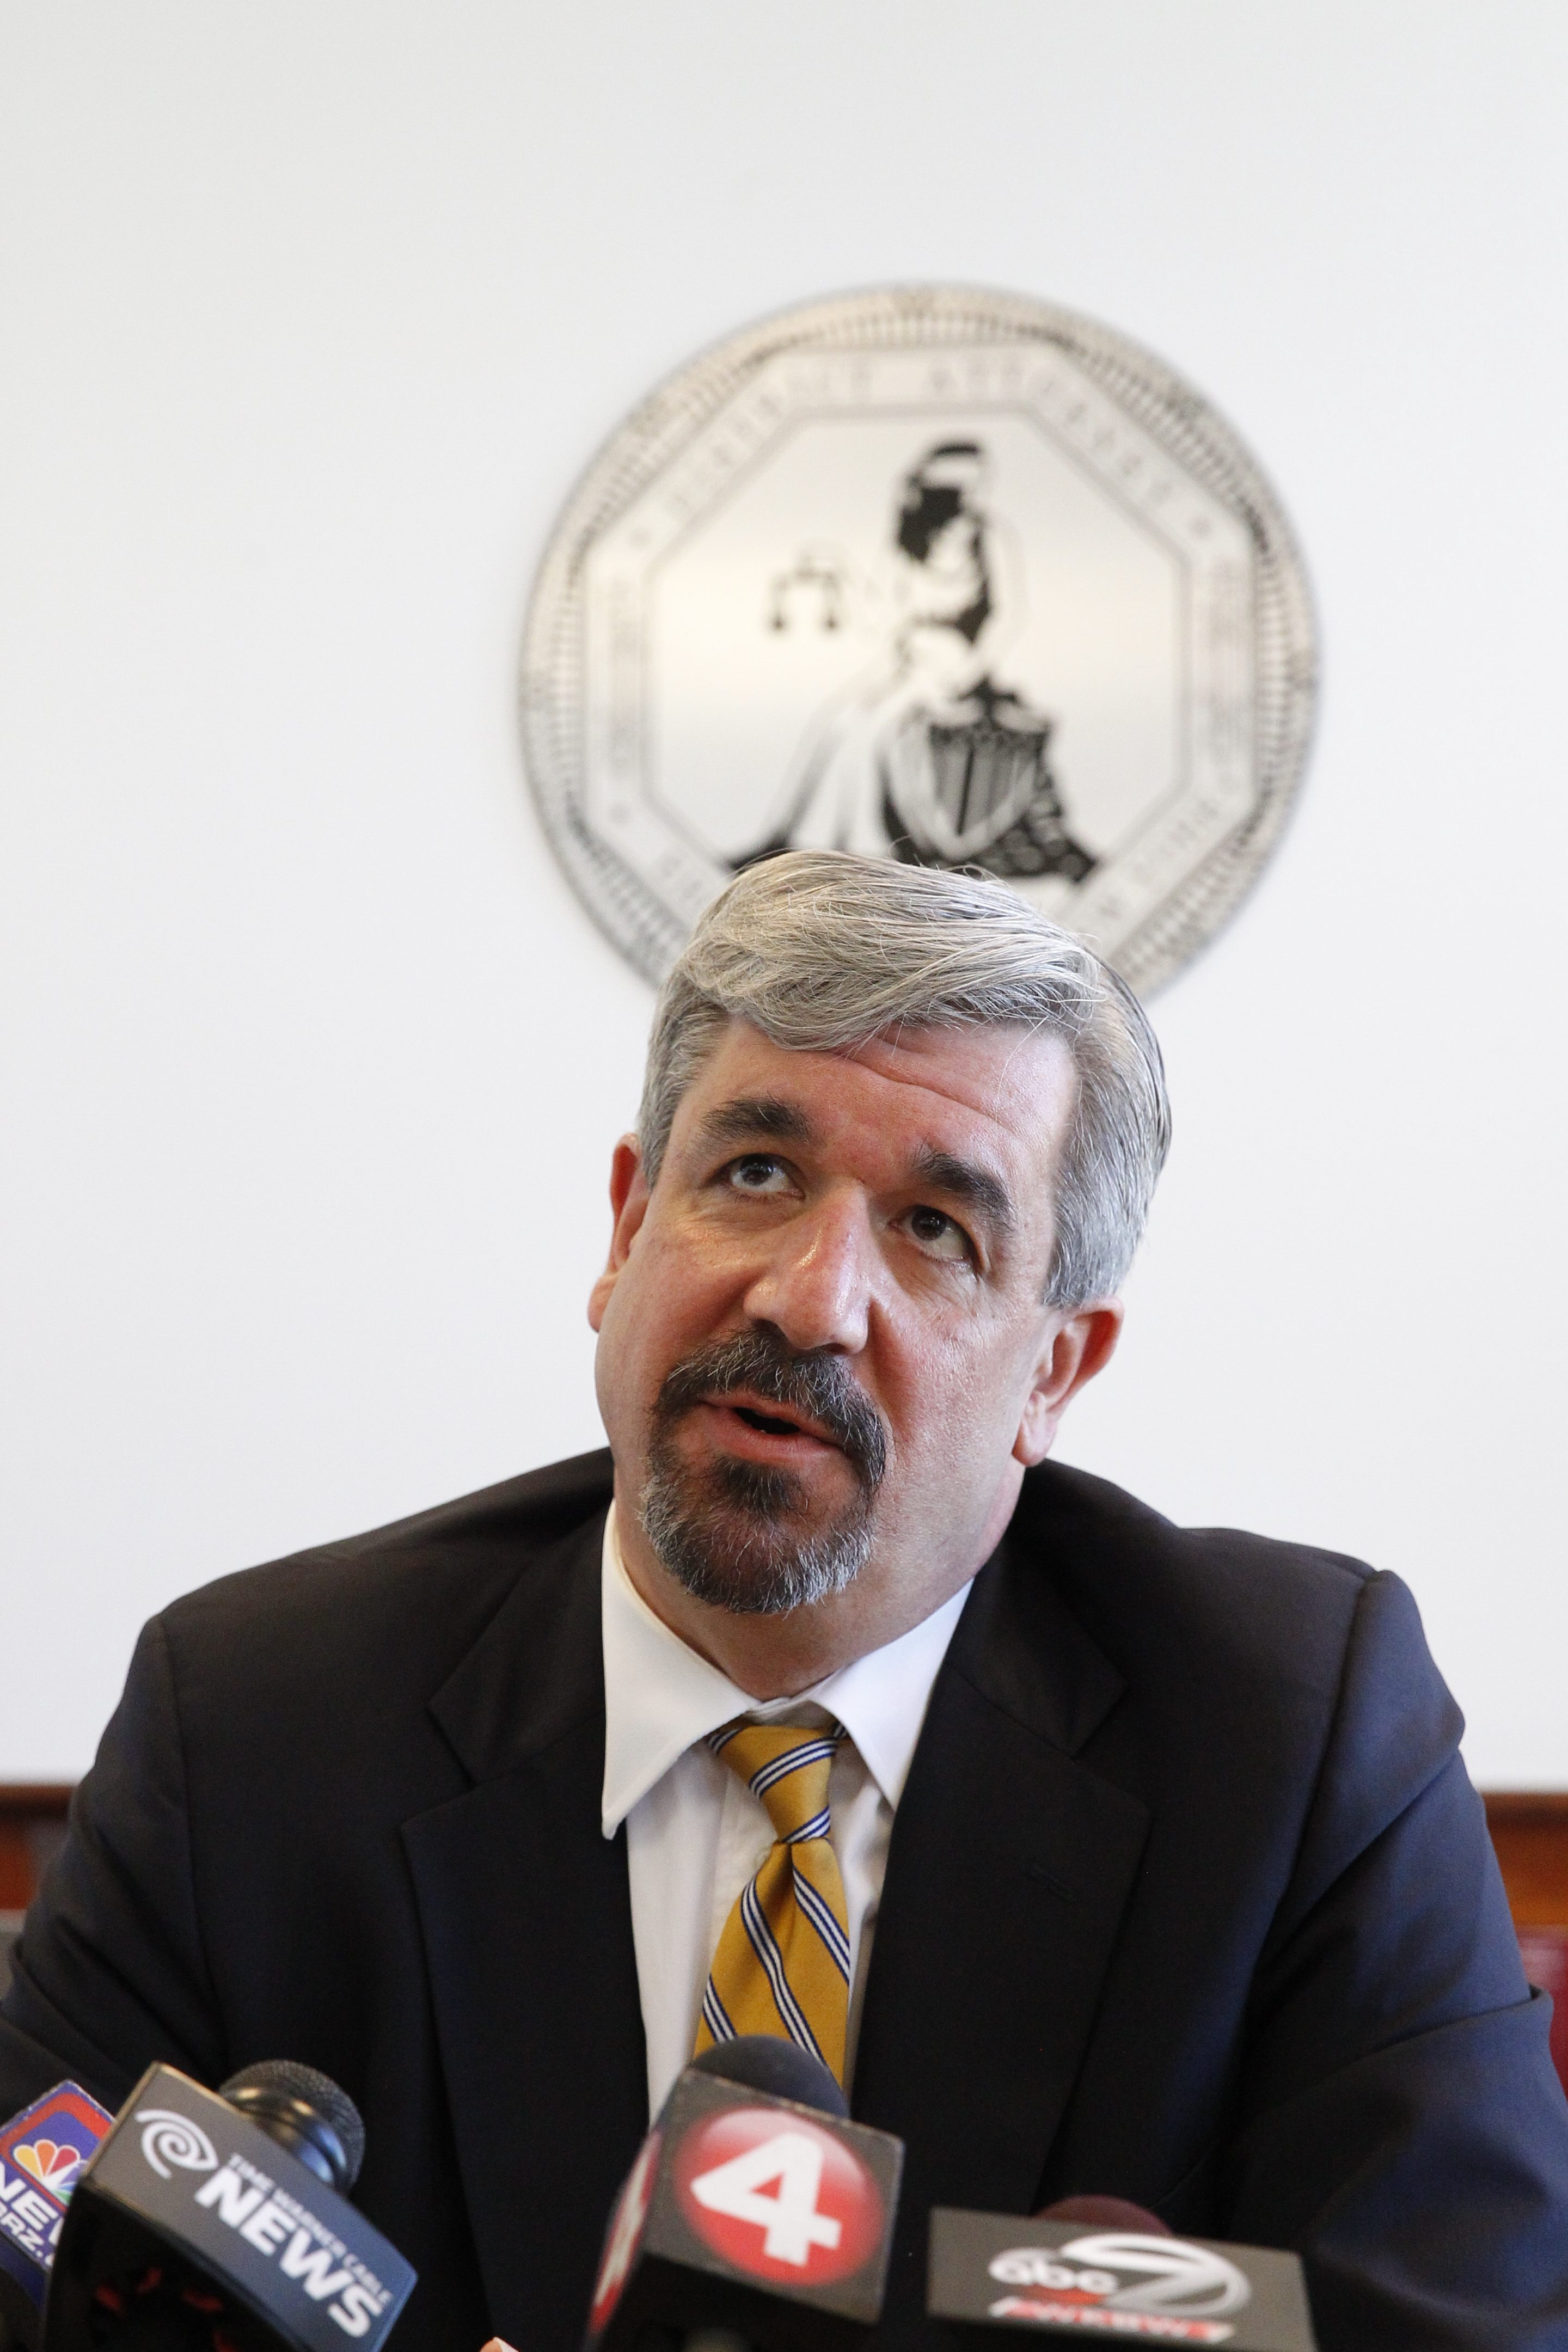 District Attorney Frank Sedita III said state law prevents him from discussing grand jury proceedings. (John Hickey/Buffalo News file photo)